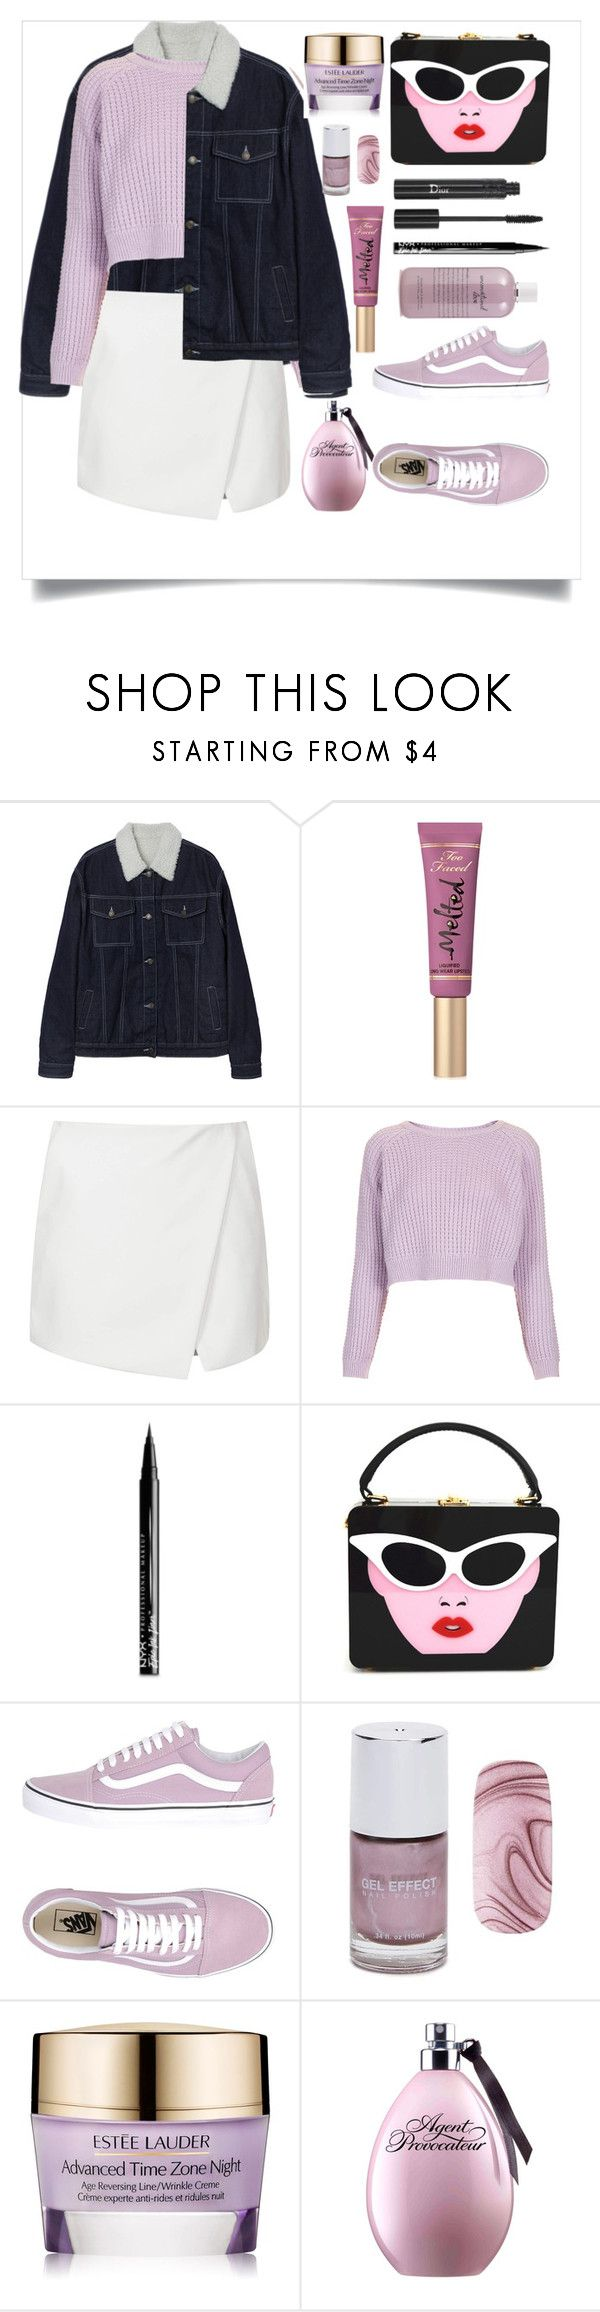 """SIMPLE 😍"" by samahdasan ❤ liked on Polyvore featuring Too Faced Cosmetics, Topshop, NYX, Vans, Christian Dior, Forever 21, Estée Lauder and philosophy"